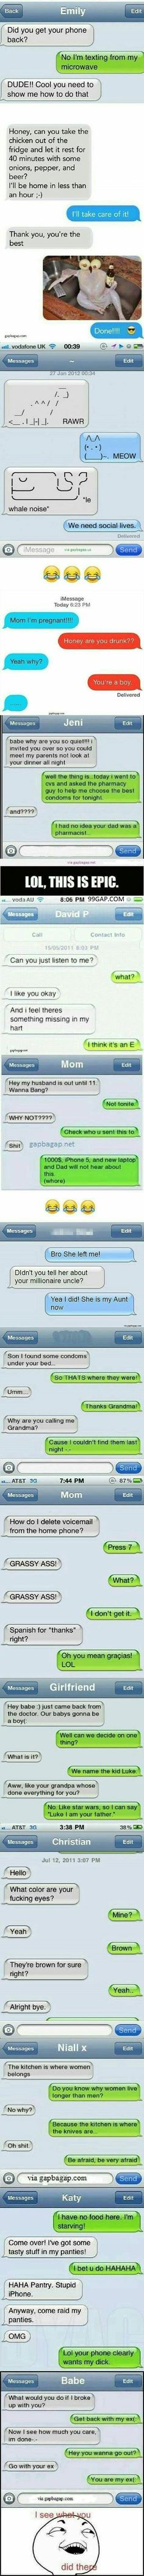 #FunnyTexts Collection From Around The World